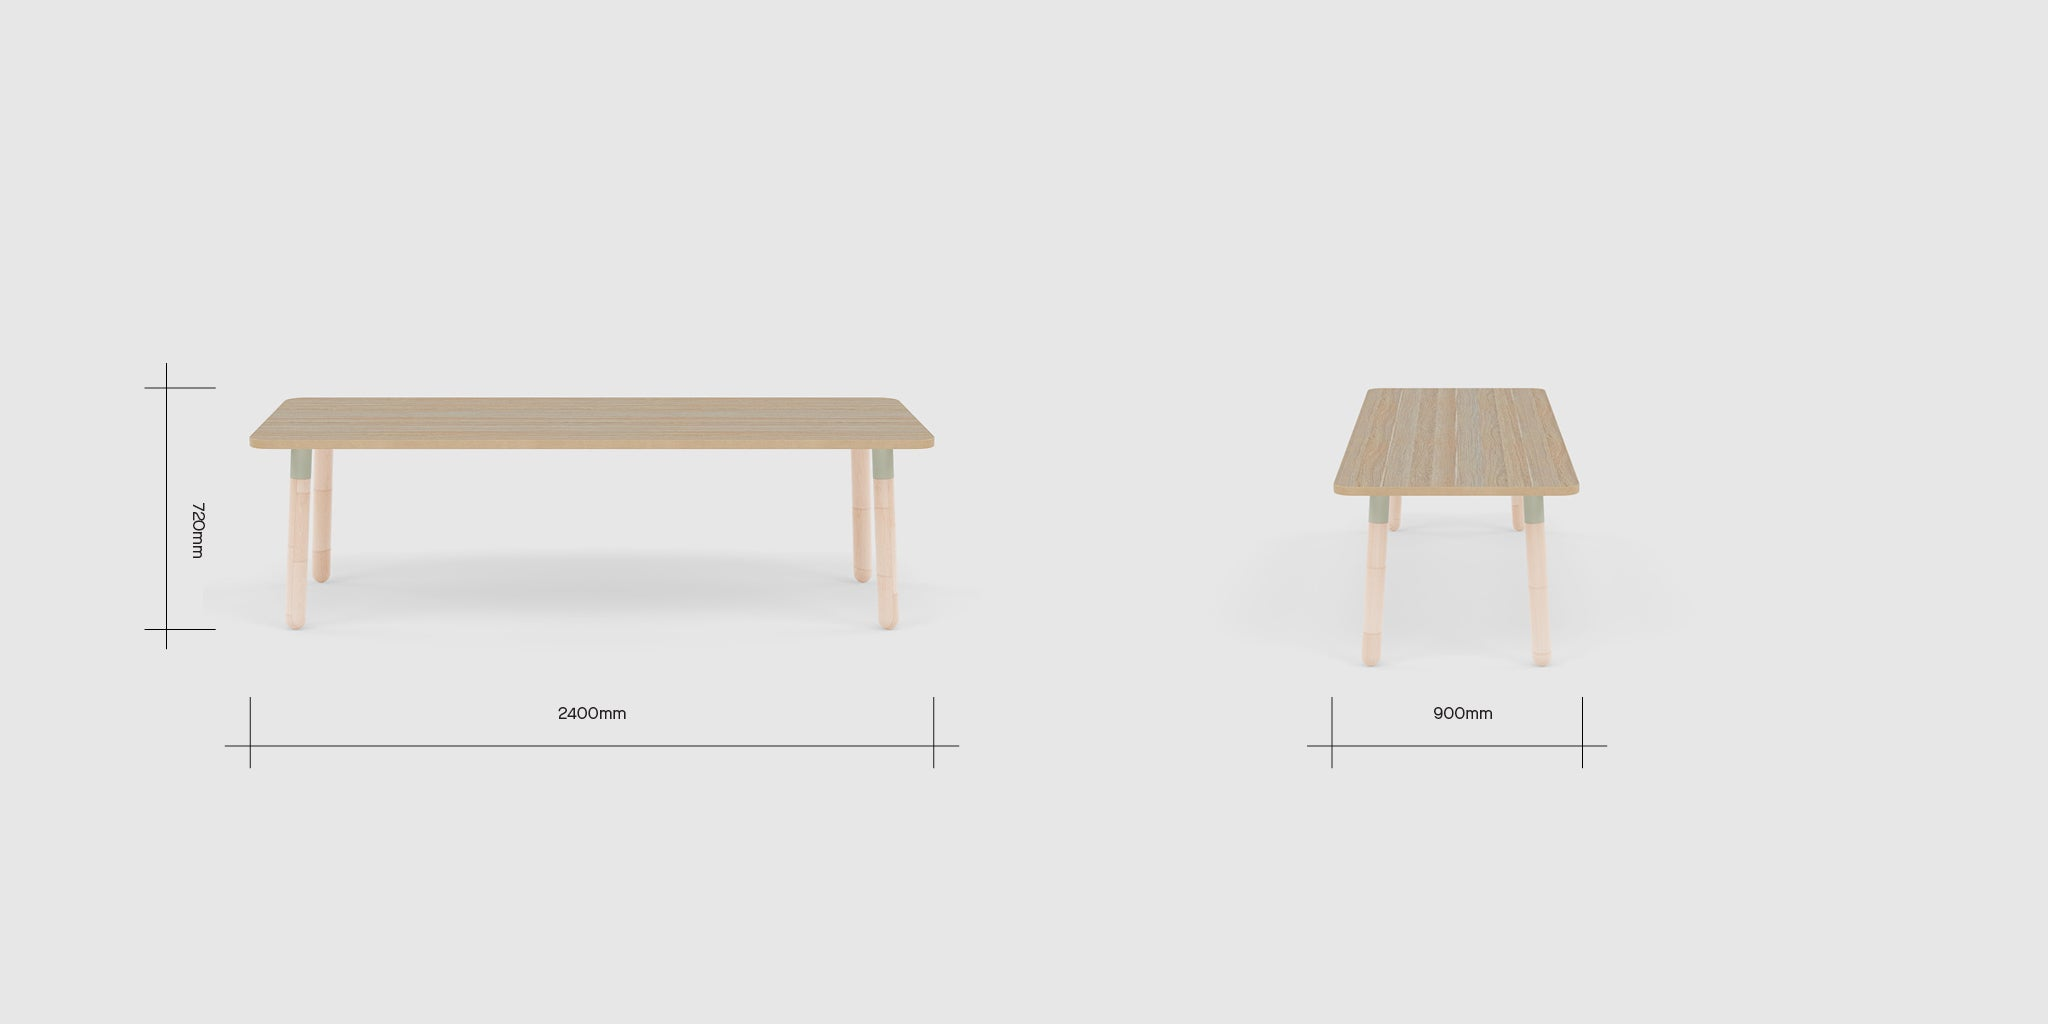 PBS 6 Person Table Dimensions